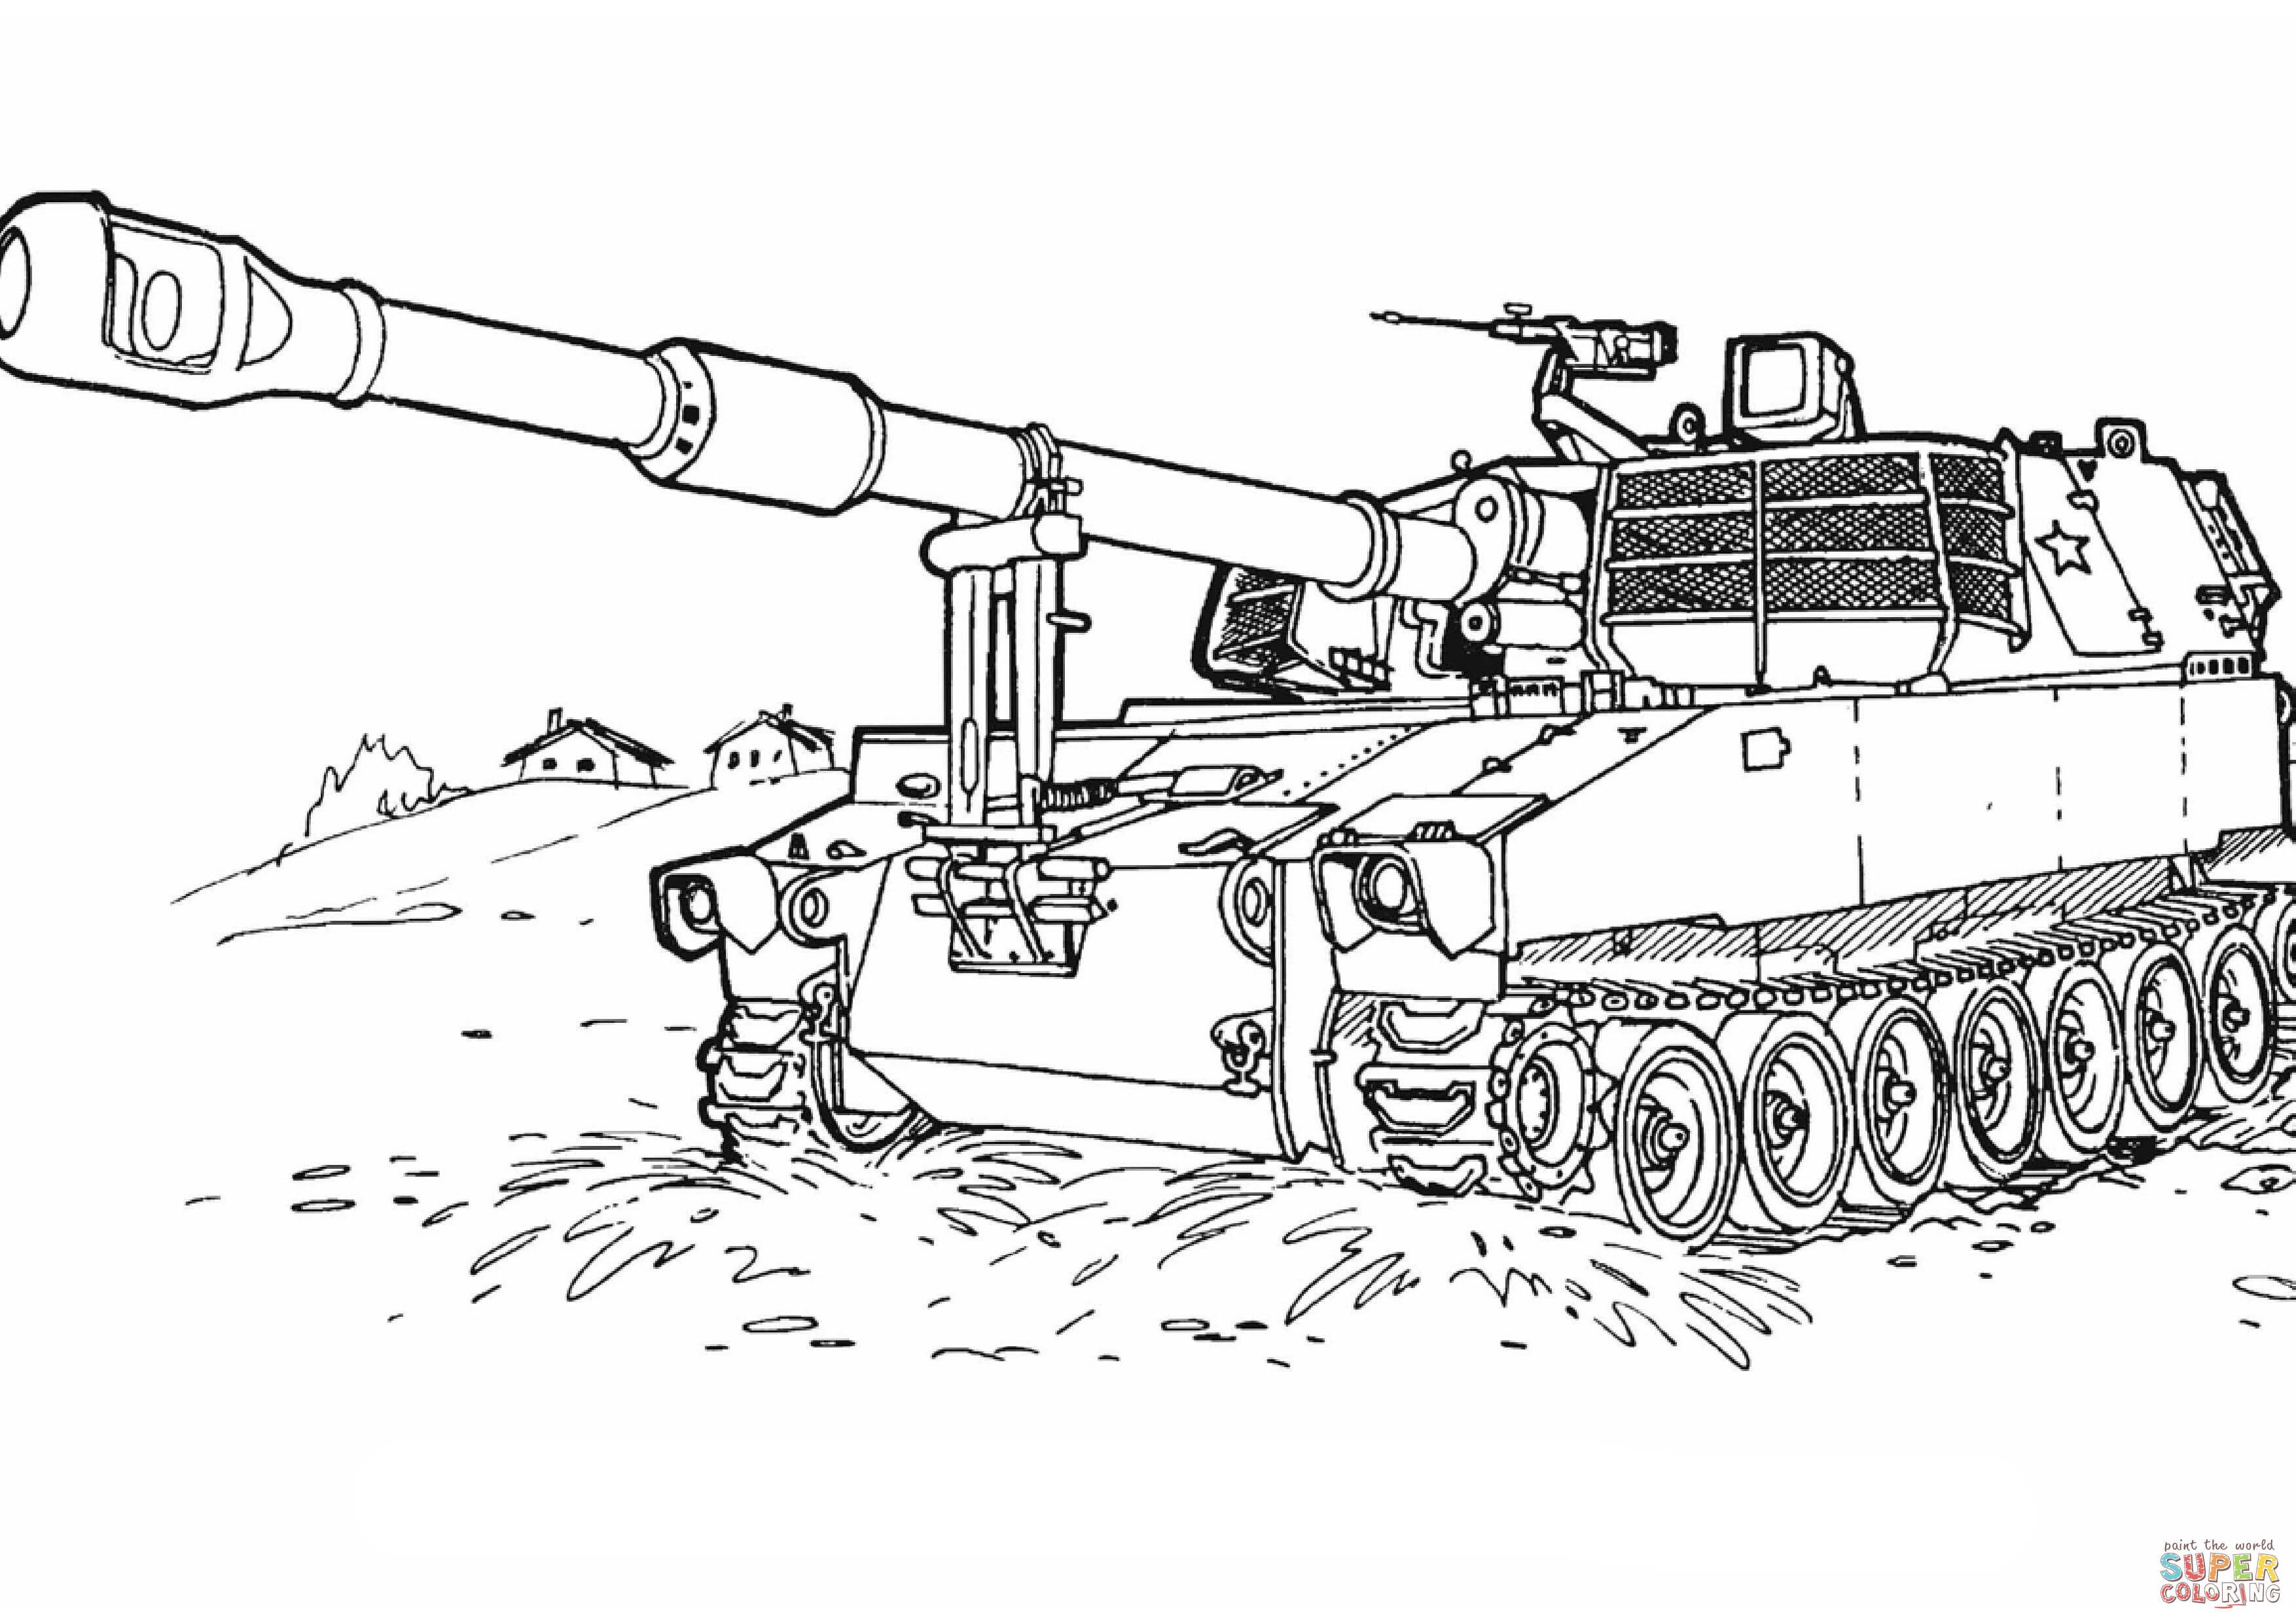 army gun coloring pages military gun coloring pages at getdrawings free download coloring army gun pages